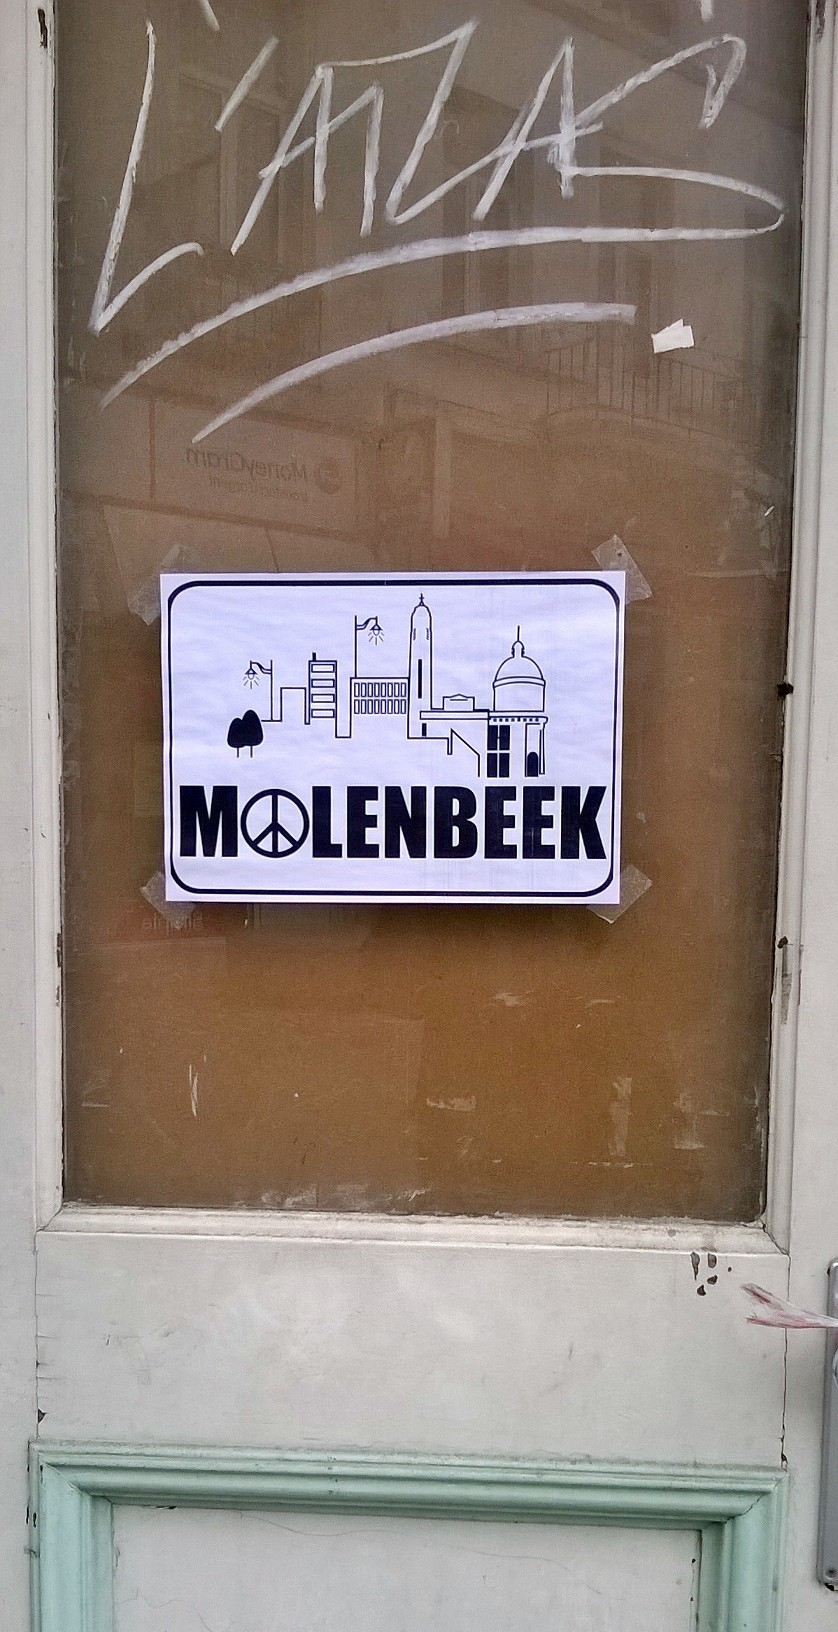 df5d4eb79bc302 A signane of Molenbeek and the peace symbol posted on the window of a  building in